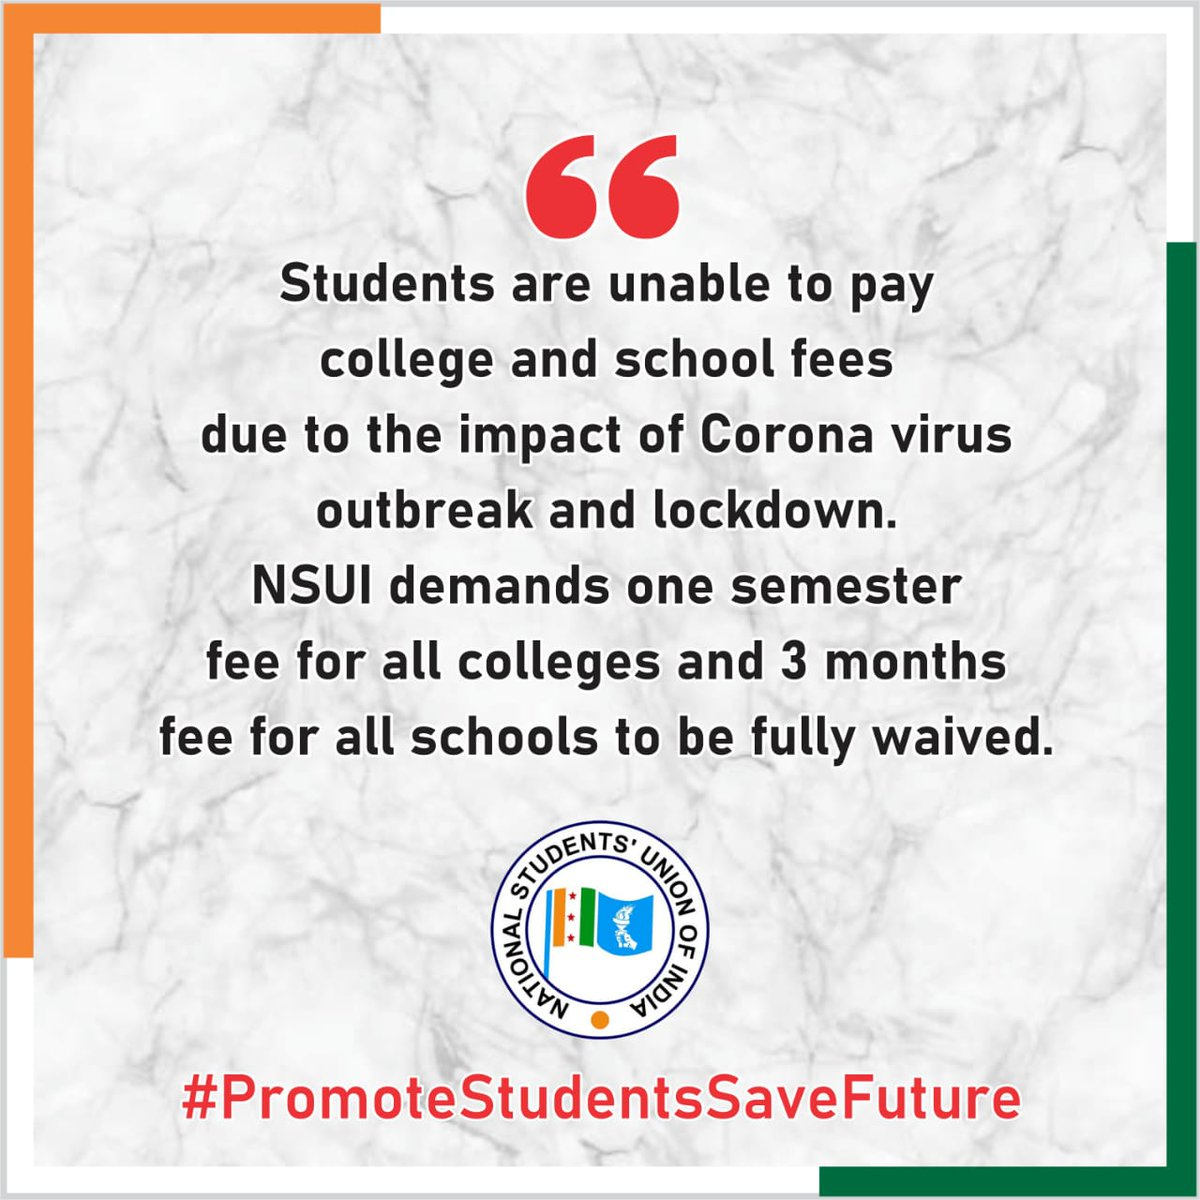 .@nsui is not just a frontal organisation of a political party , but it's an ideology having an amalgamation of patriotism with the spark of young minds and future intellectual leaders,which makes a nation shine like a star. #PromoteStudentsSaveFuture https://t.co/3MYKisu3mr